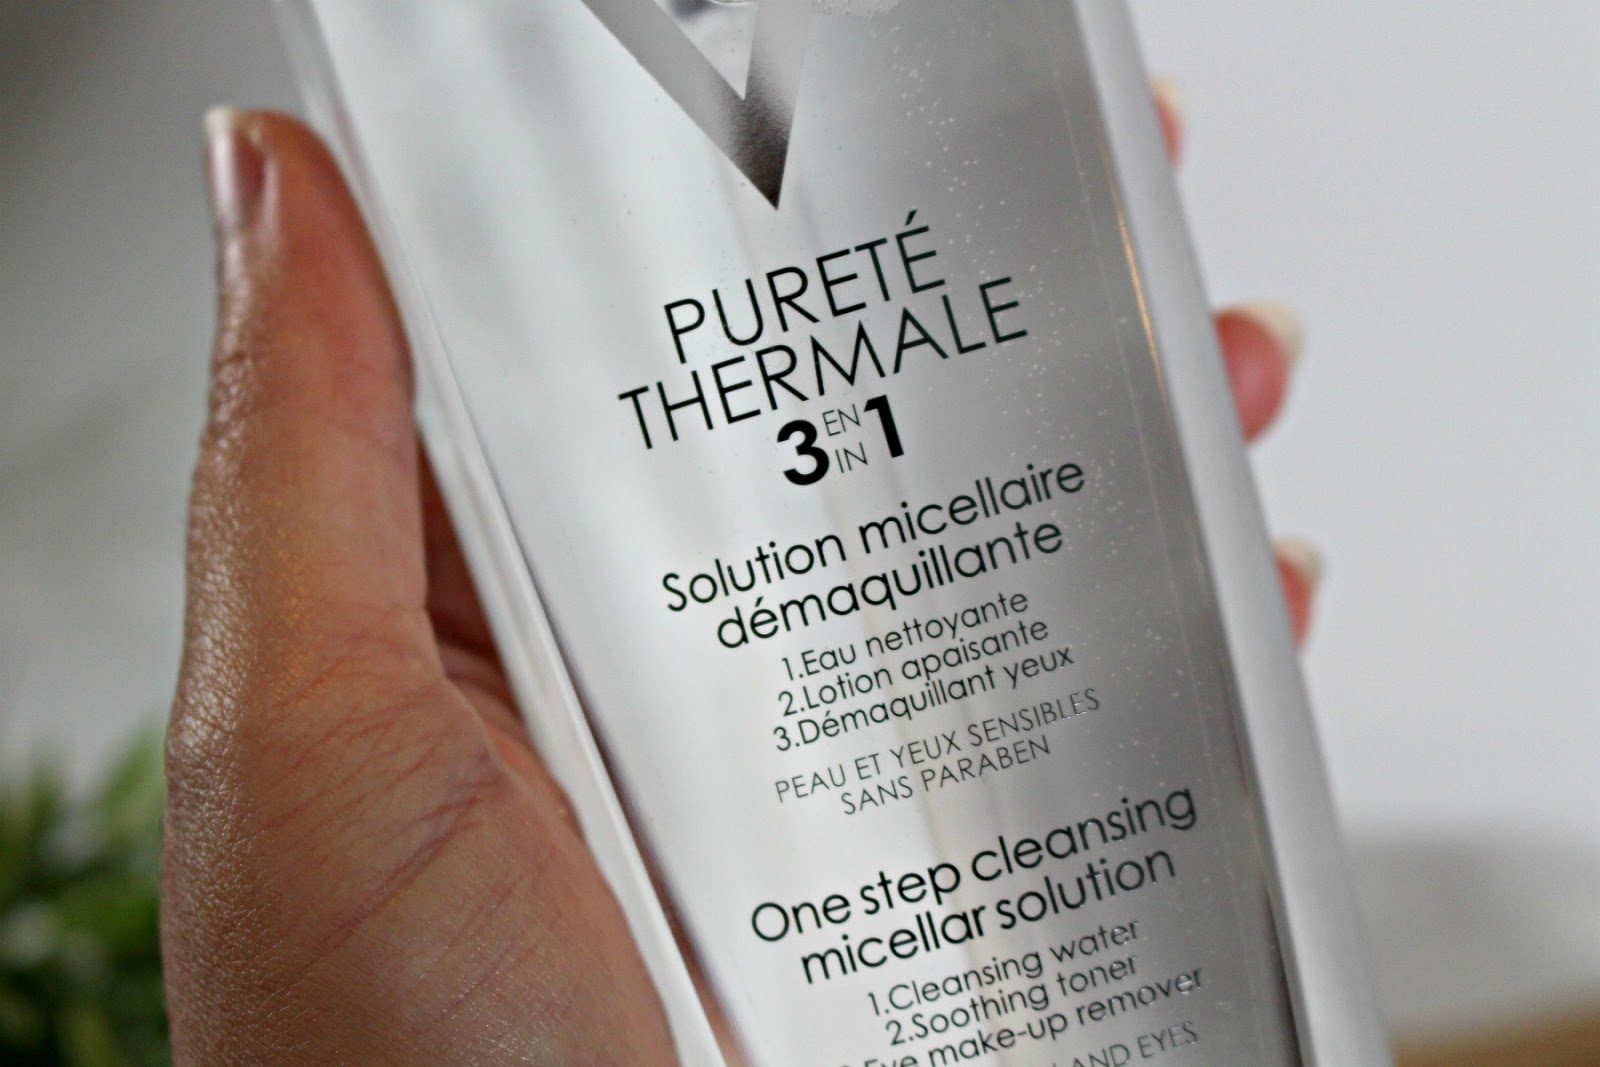 Vichy Purité Thermale micellair water